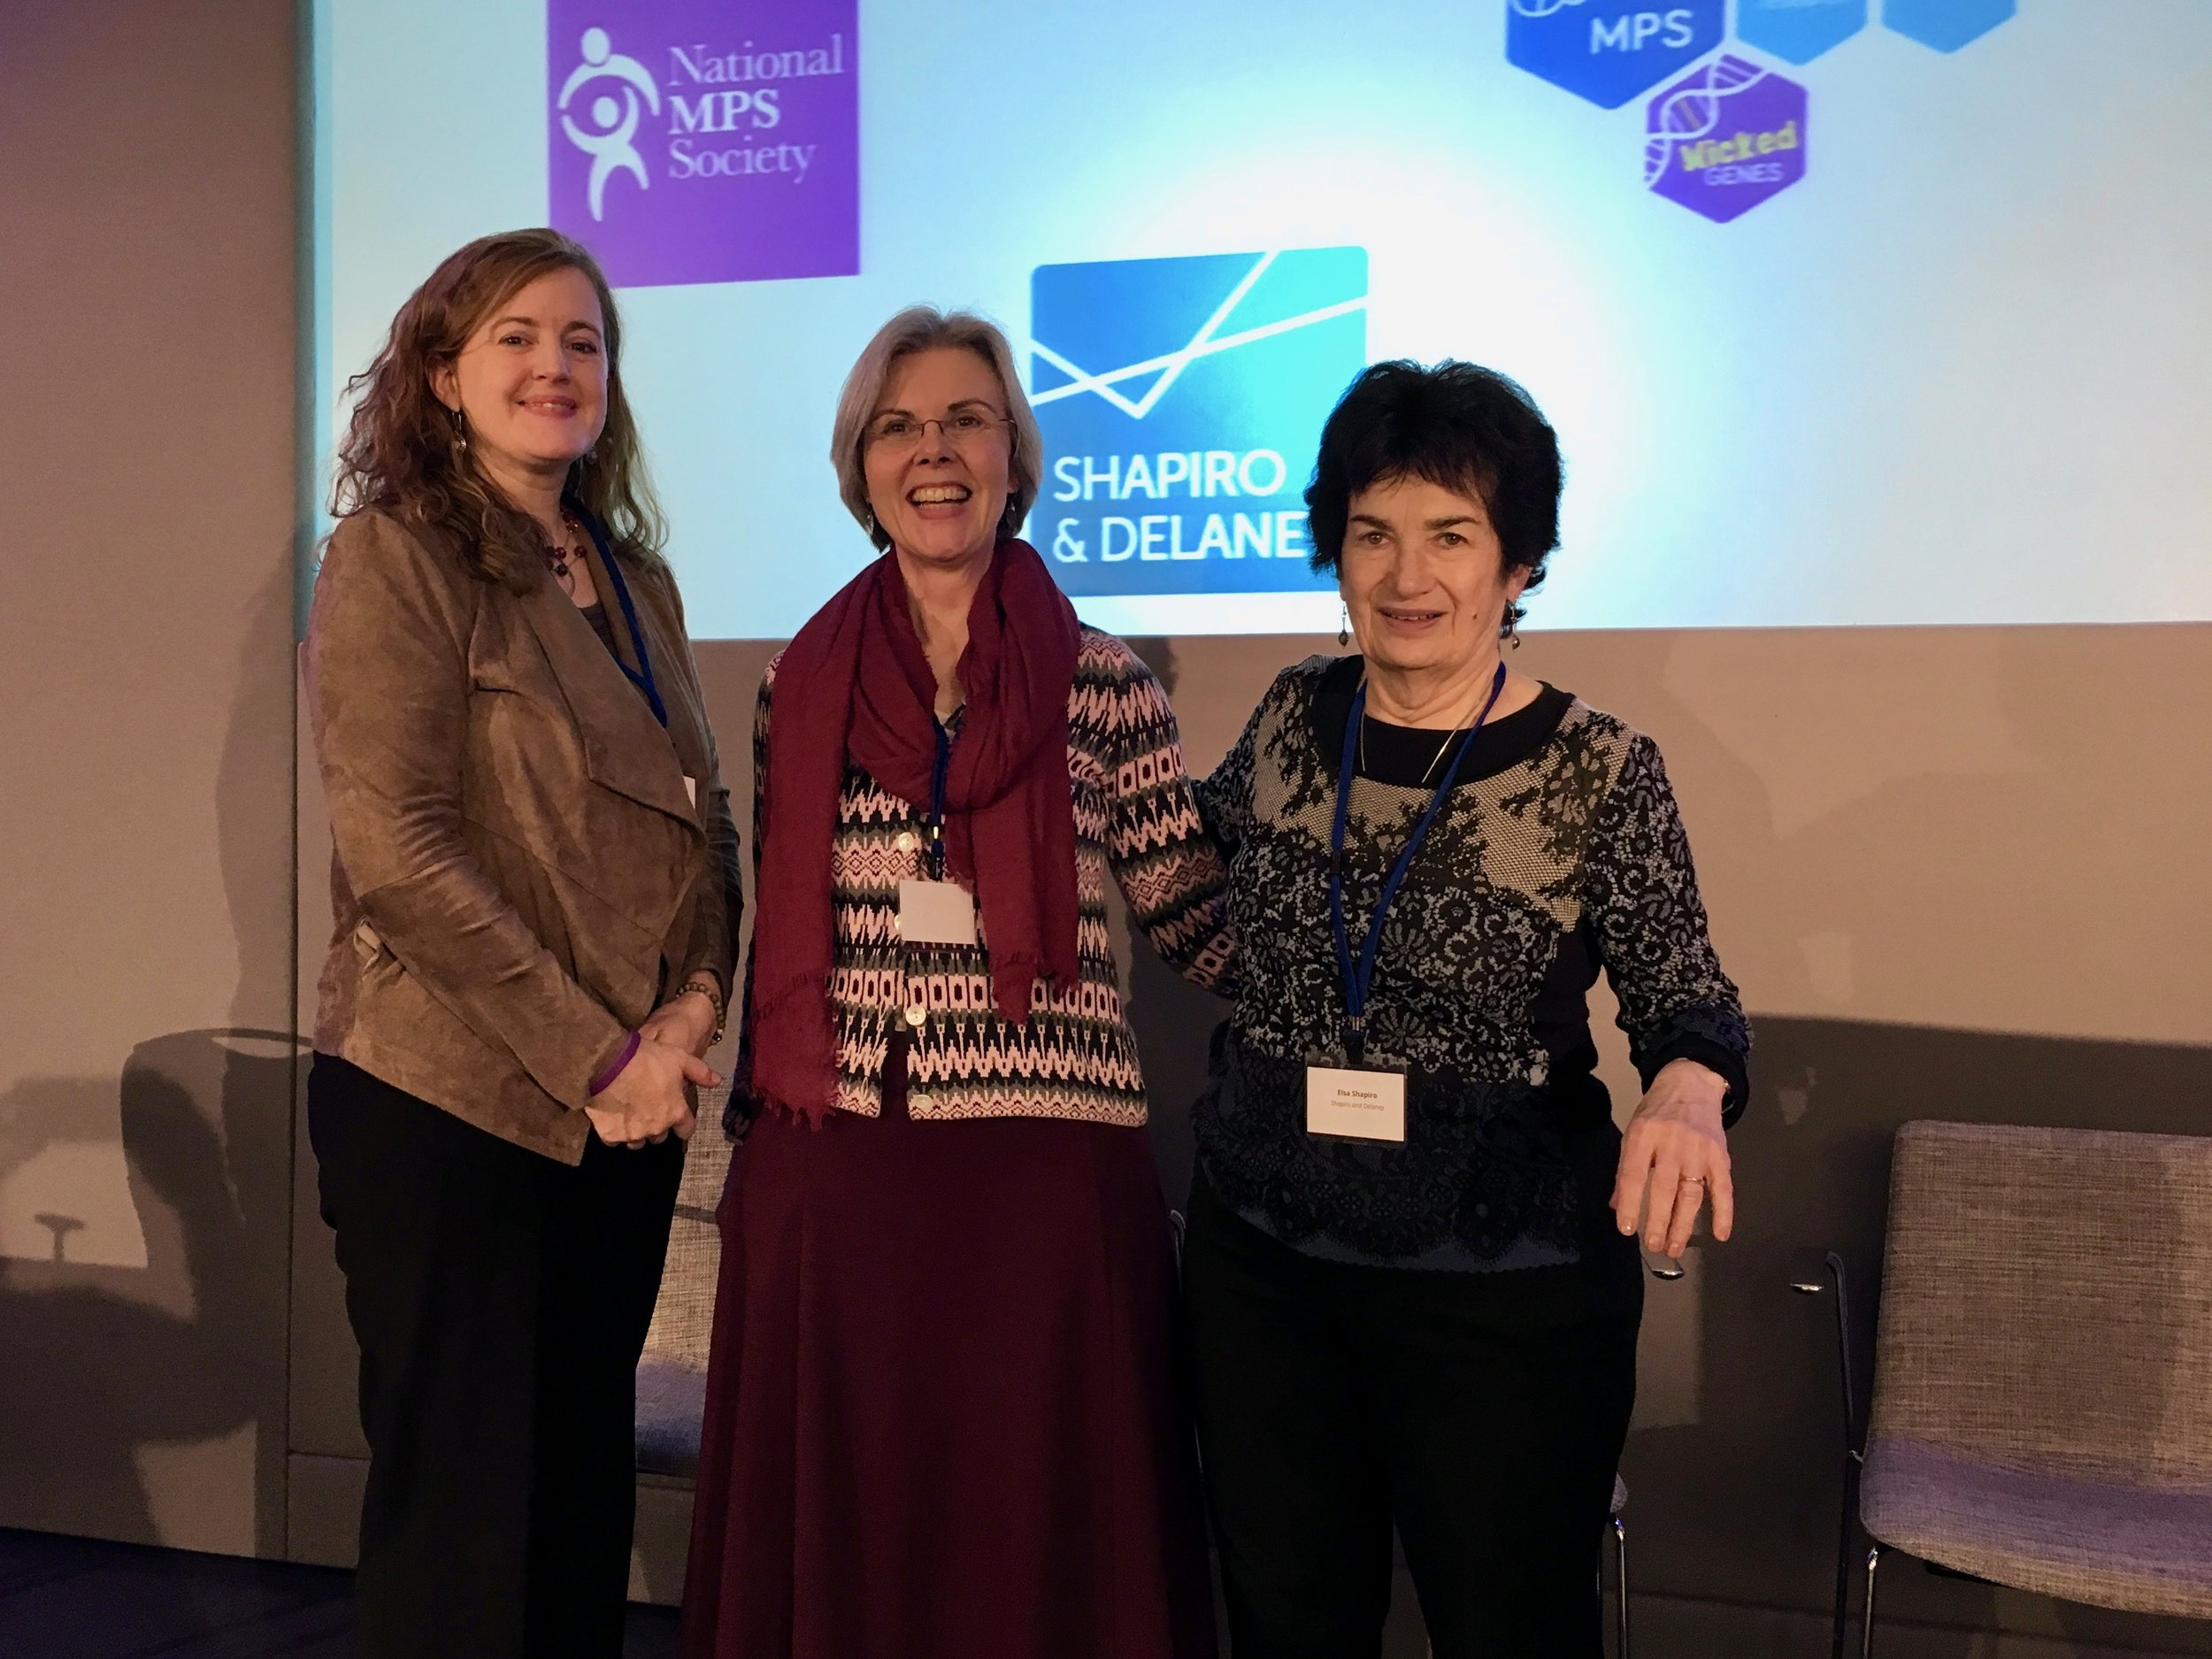 The consensus conference was organized by Kate Delaney and Dr. Elsa Shapiro, to either side of Dr. Hanneke van der Lee, Pediatric Clinical Research Office, Academic Medical Center, Amsterdam, The Netherlands, who oversaw the consensus process.